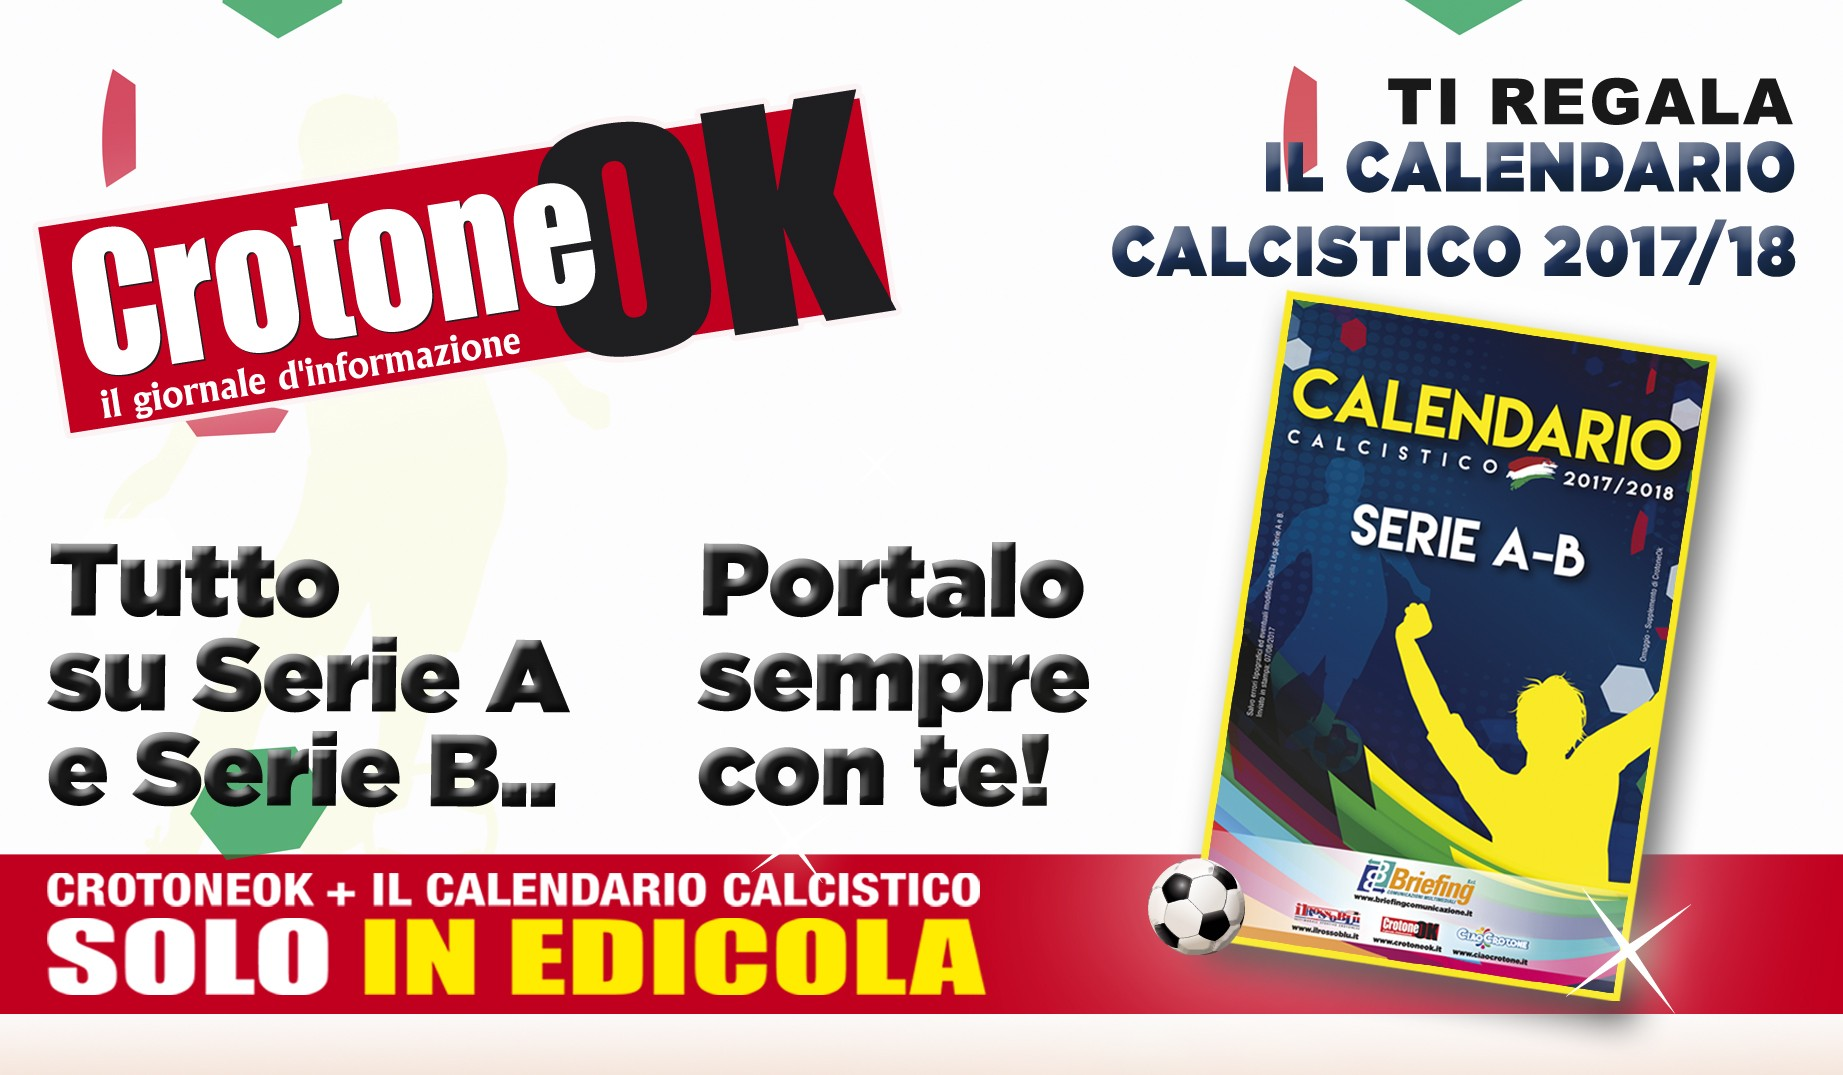 Calendario Crotone.Arriva Il Calendario Calcistico 2017 2018 Firmato Briefing